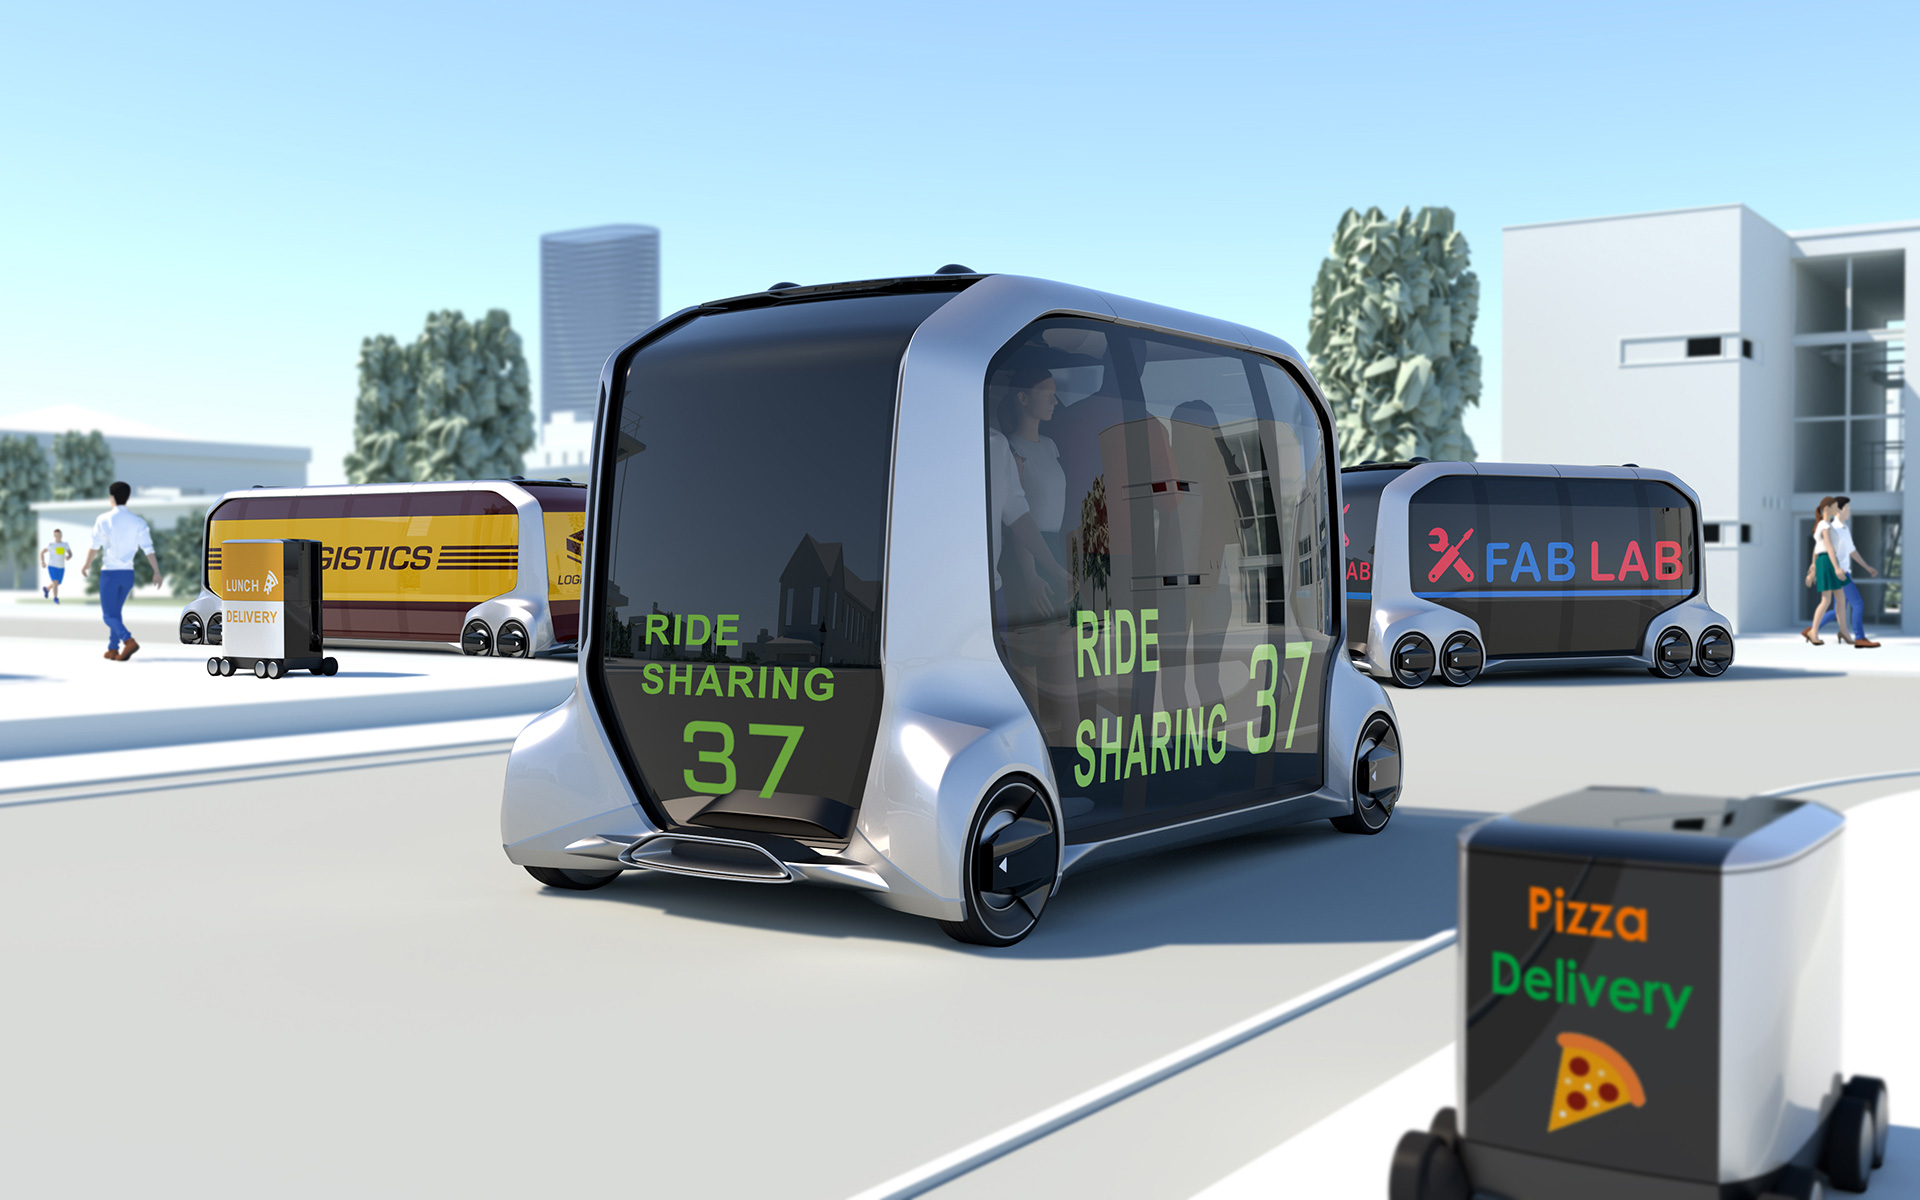 Tokyo Motor Show 2019 Future Expo and Future of Mobility2